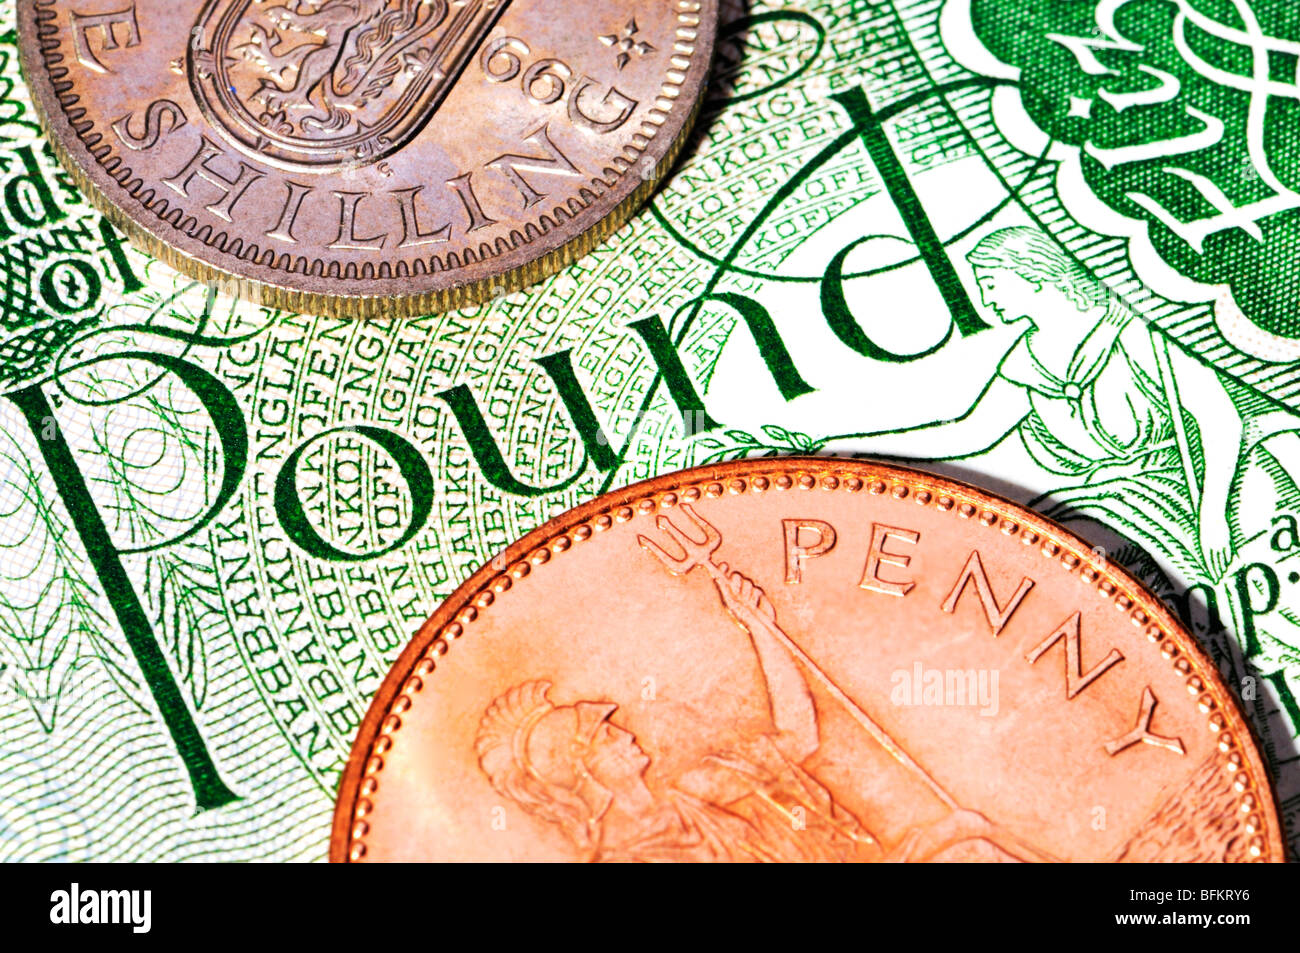 Pre-decimal British coins. Pound, shilling and penny - Stock Image